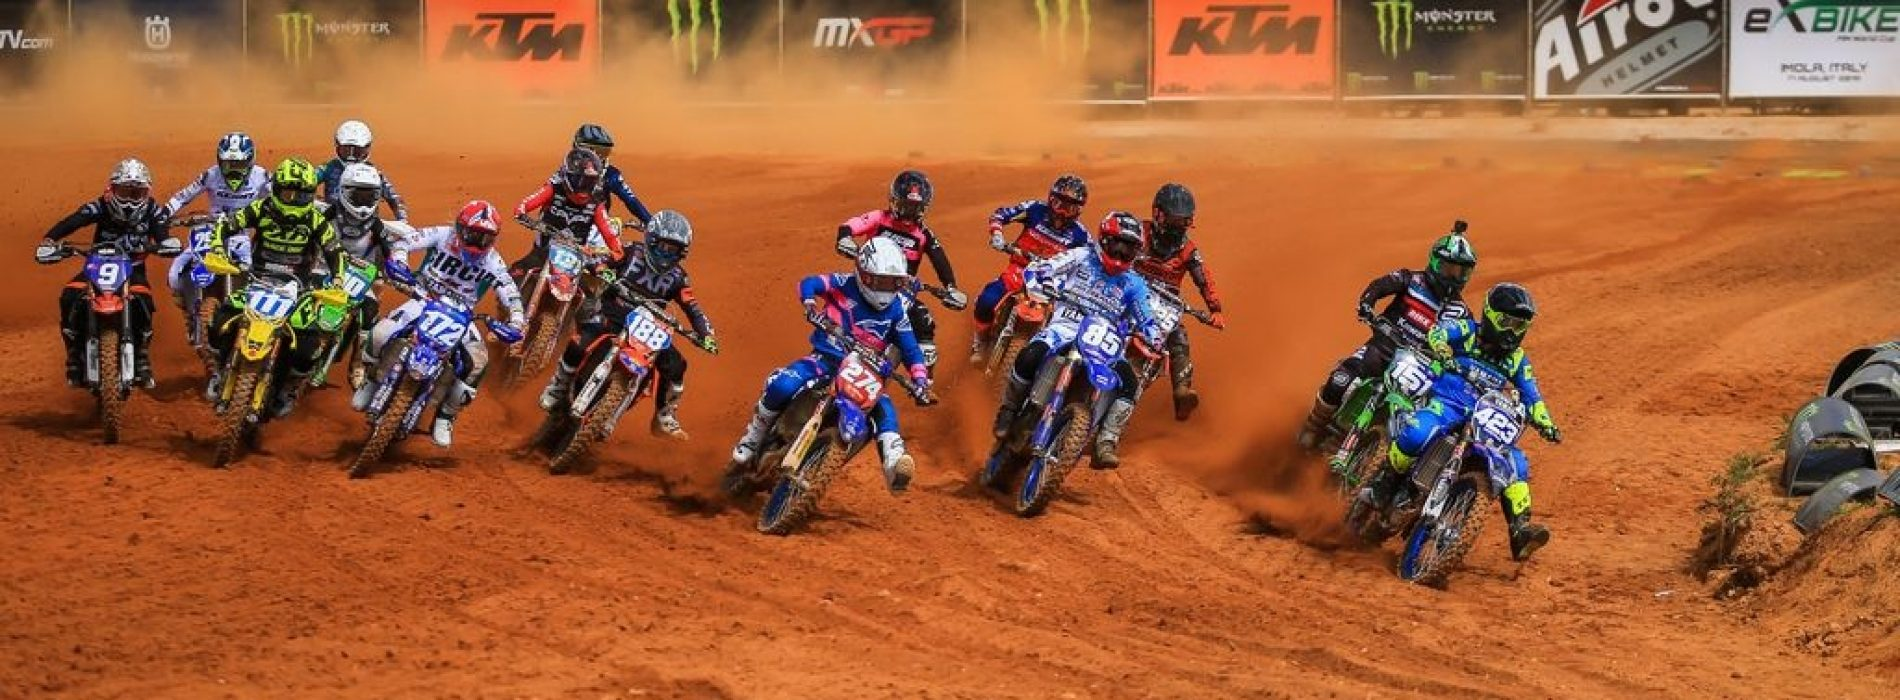 Women MX World Championship- counting down to Round 3 MXGP of Loket